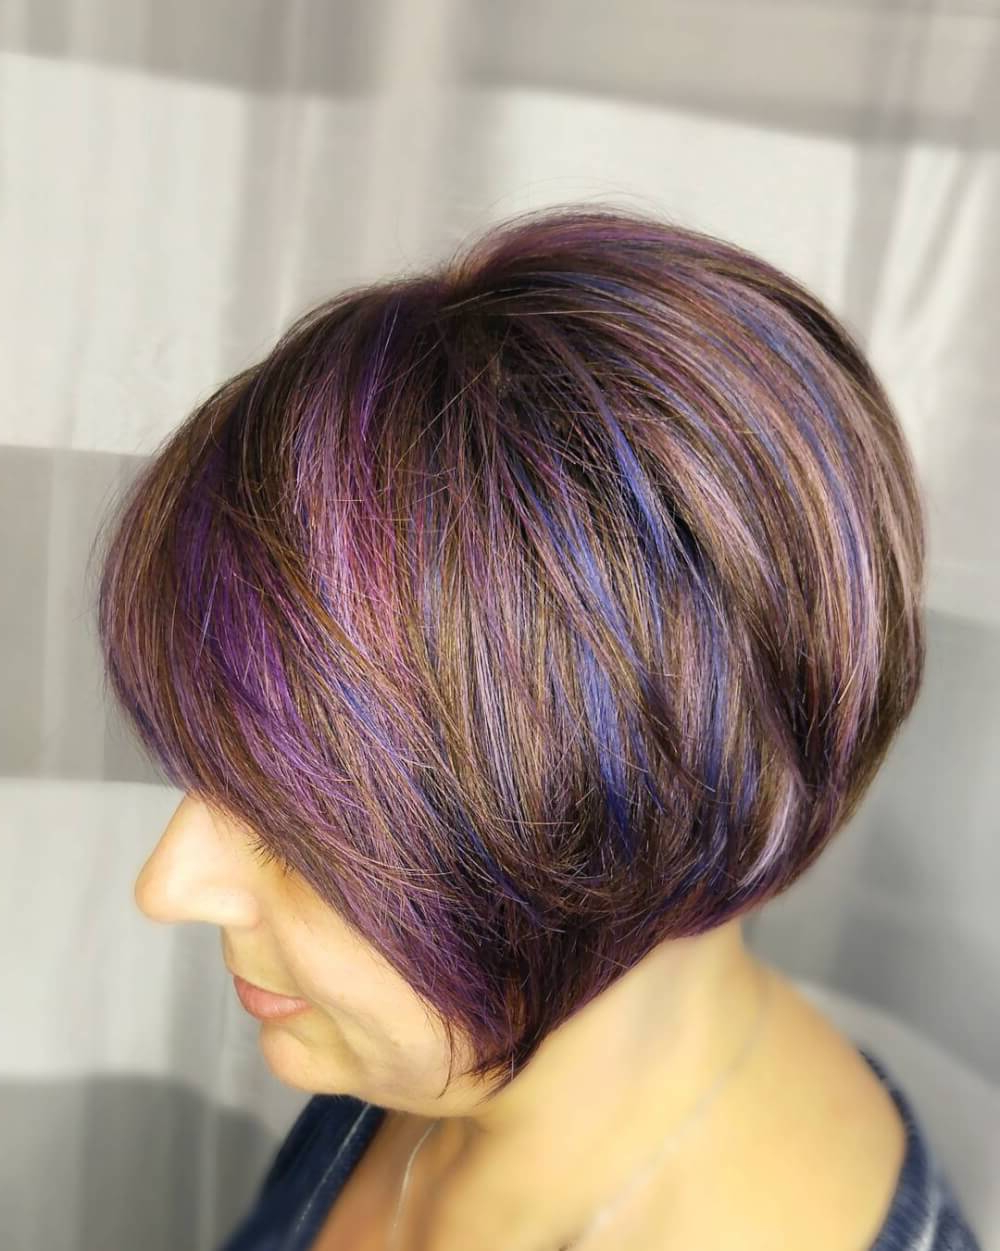 39 Classiest Short Hairstyles For Women Over 50 Of 2018 For Over 50S Short Hairstyles (View 23 of 25)